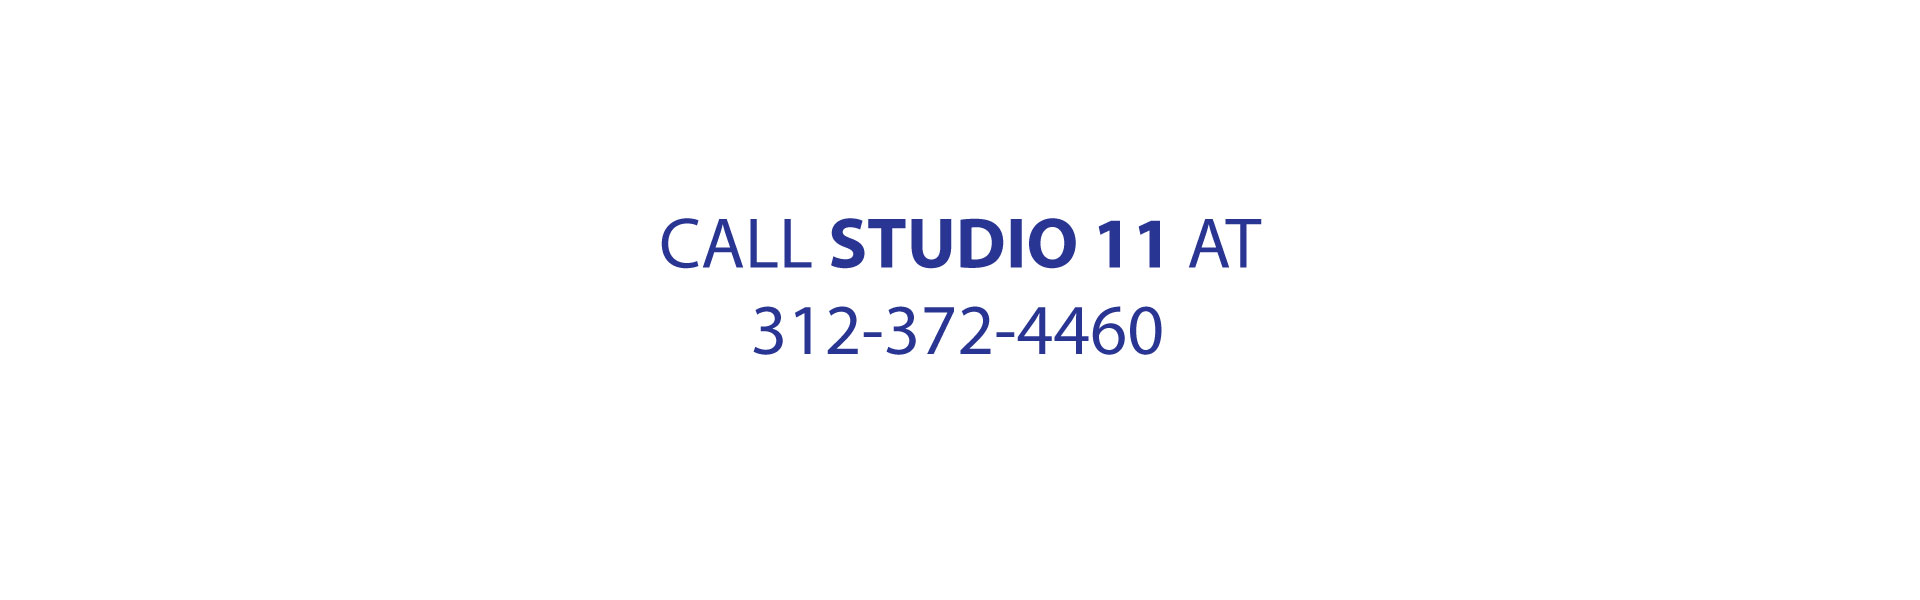 https://recording.studio11chicago.com/wp-content/uploads/2016/11/CALL-BANNER-3.jpg